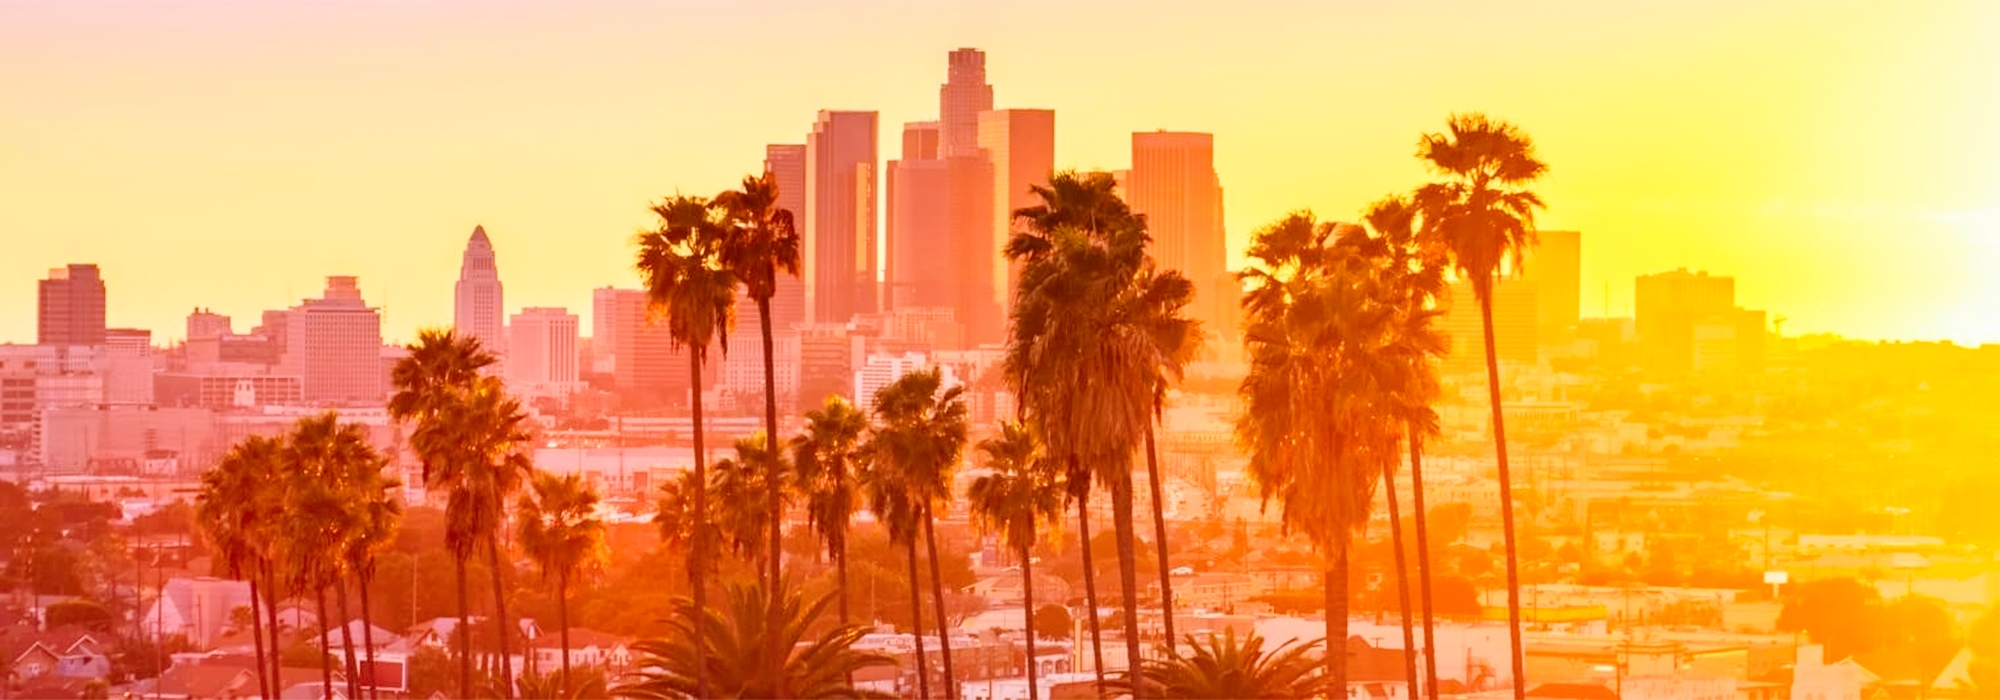 Summer holiday destination slider image Los Angeles